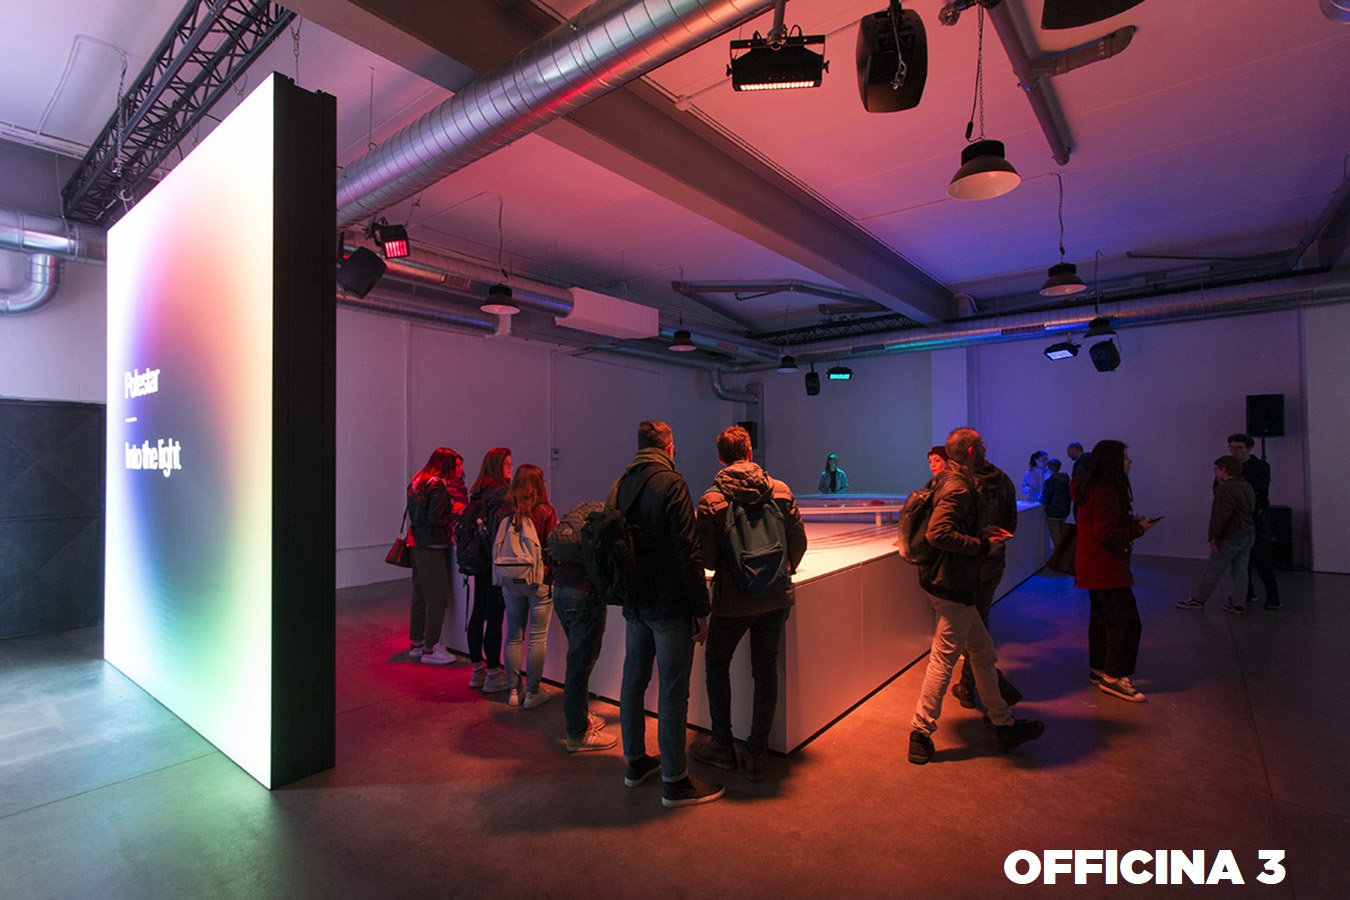 Opificio 31-Officine Cova - Officina, Open space, Showroom, Spazio outdoor di 320mq in Via Tortona 31 | location disallestita 15